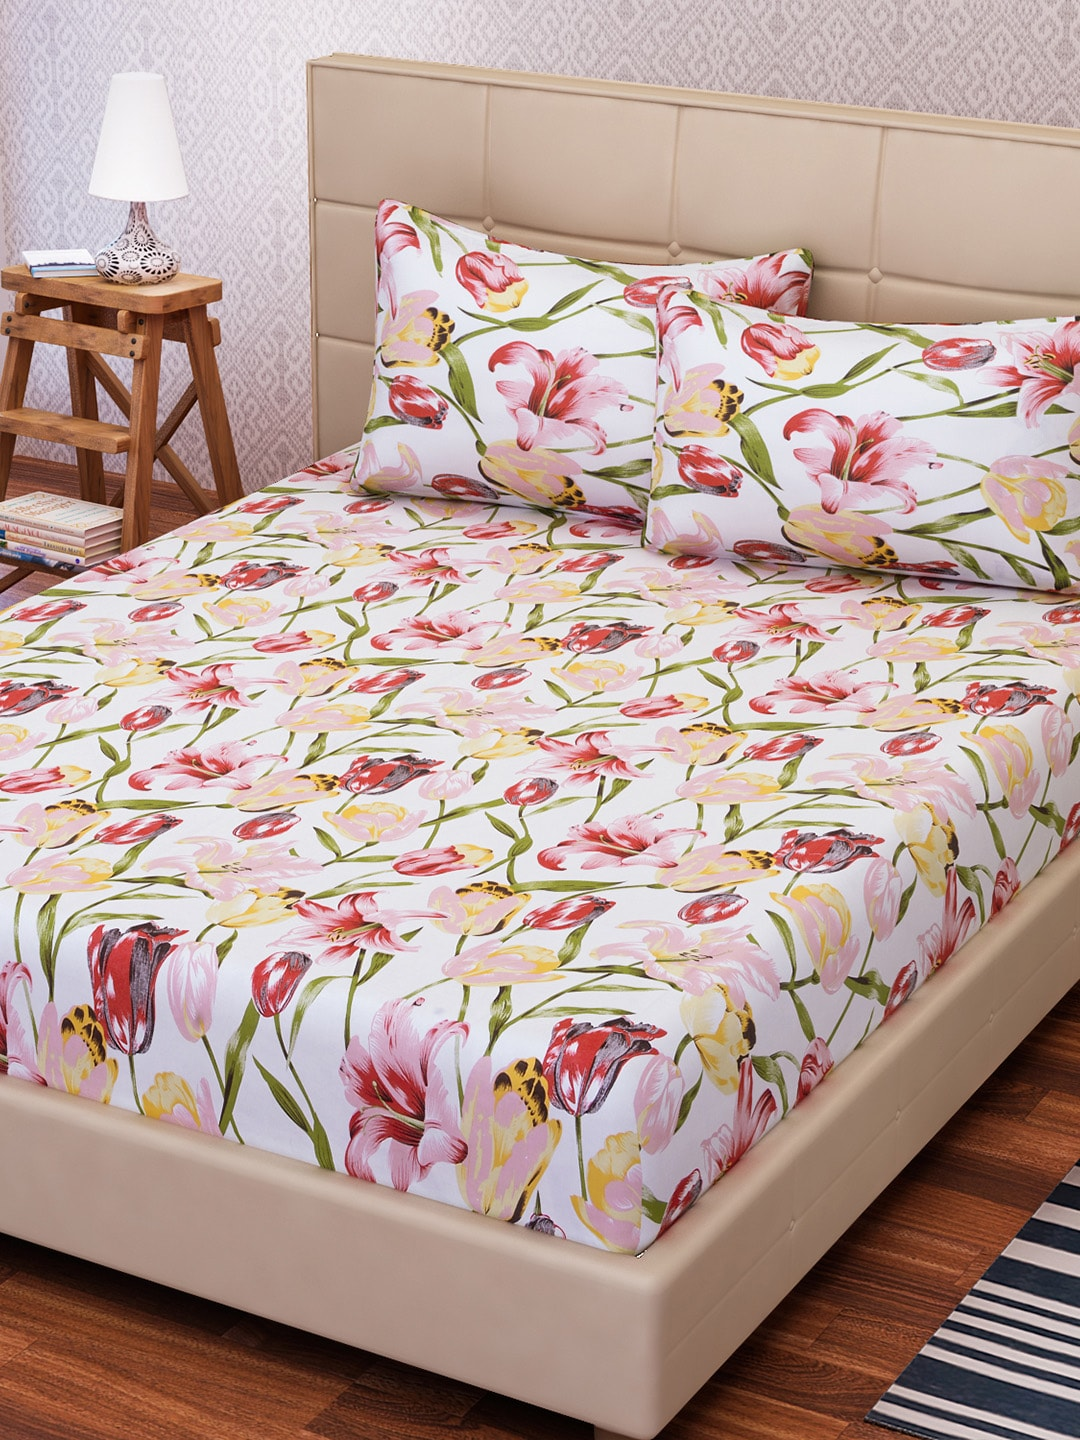 ed4598559bb Bedsheets - Buy Double   Single Bedsheets Online in India